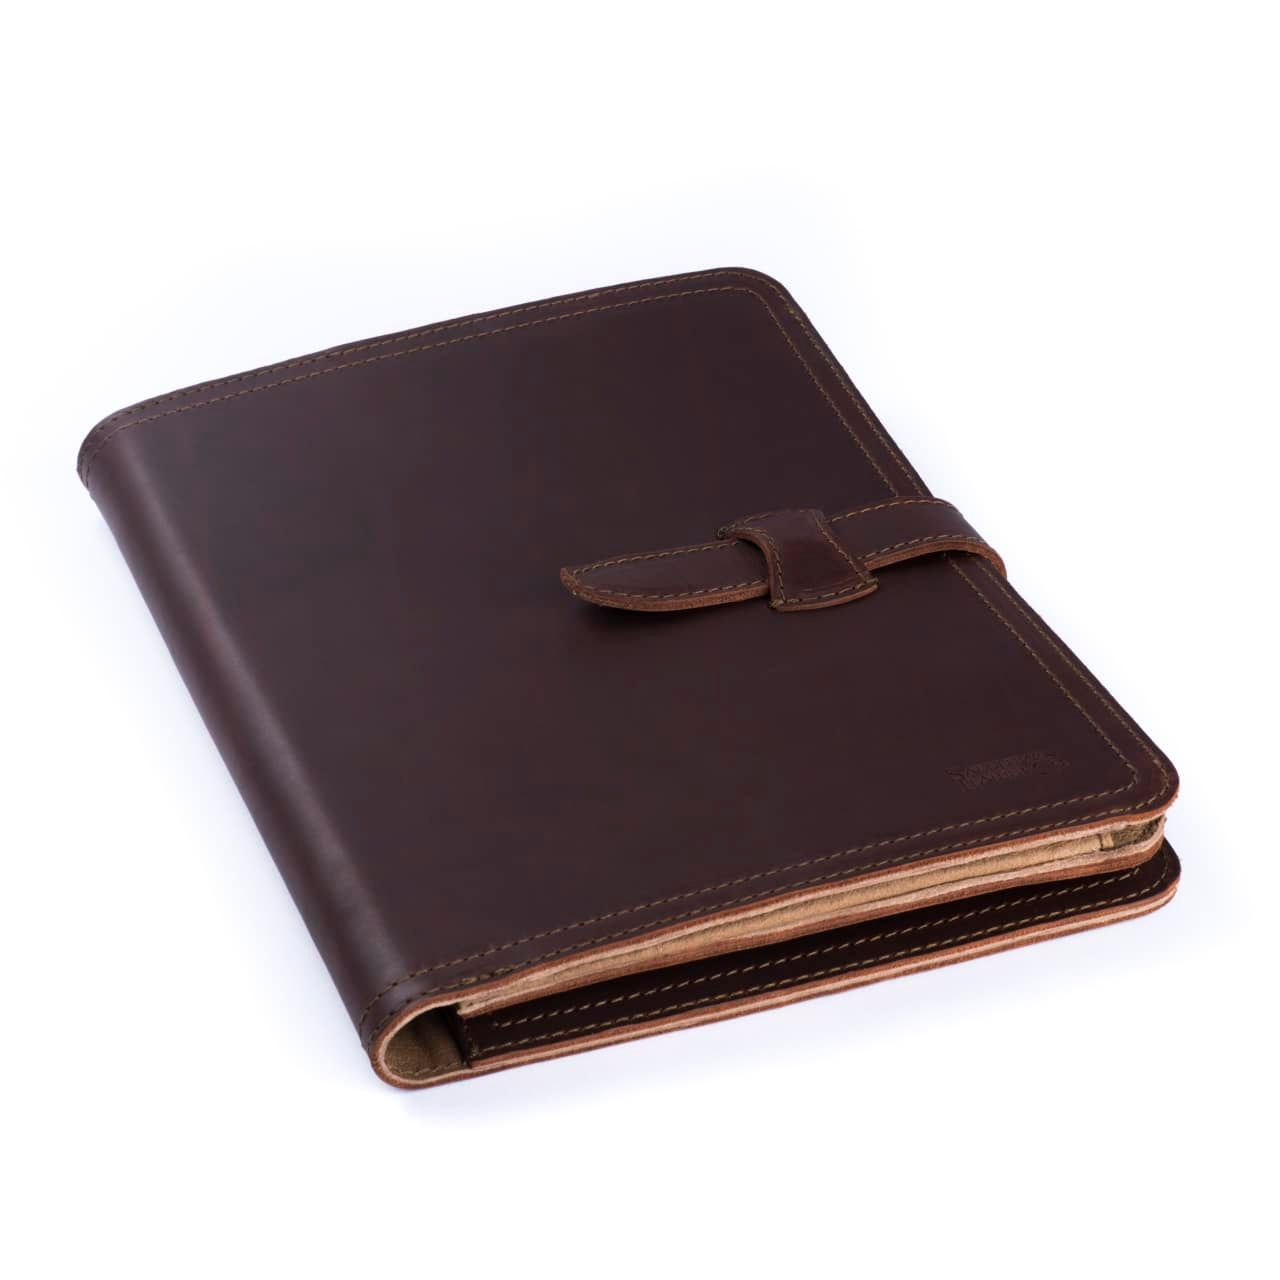 Leather Tablet Notepad Holder Closed in the Color Chestnut